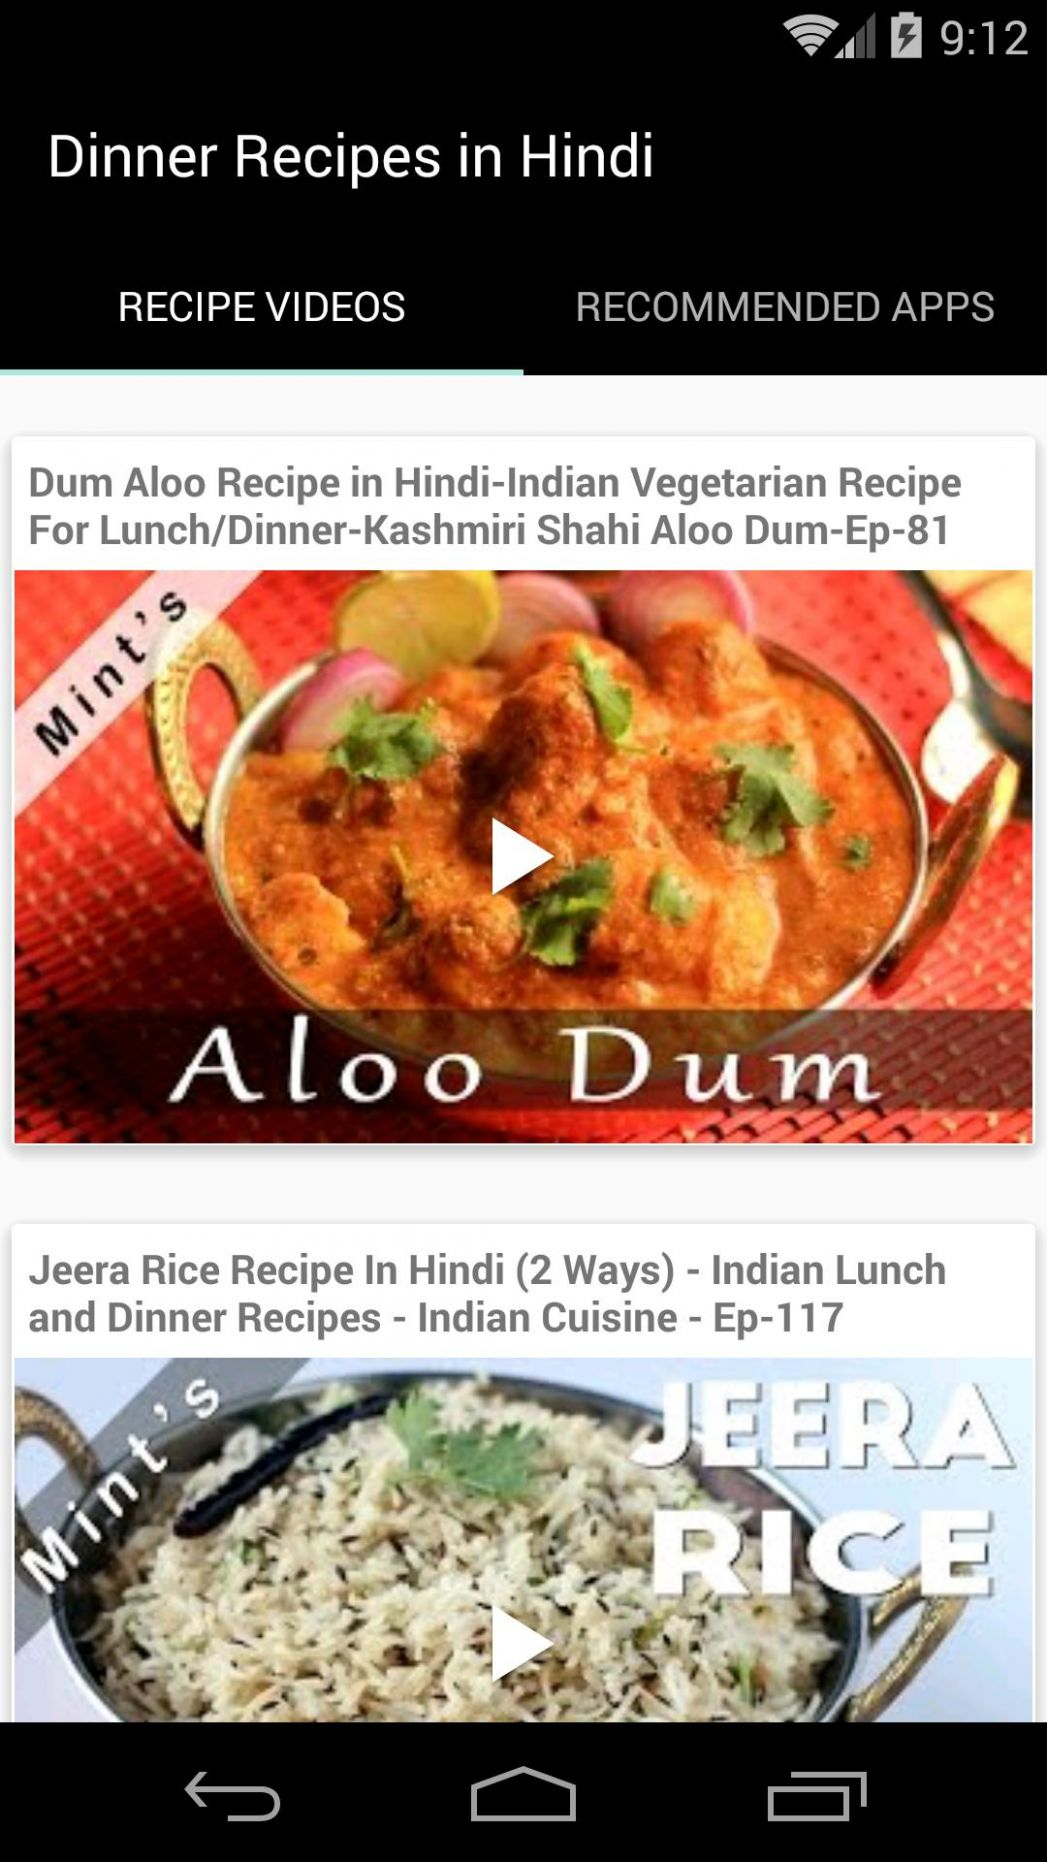 Dinner Recipes in Hindi for Android - APK Download - Dinner Recipes Hindi